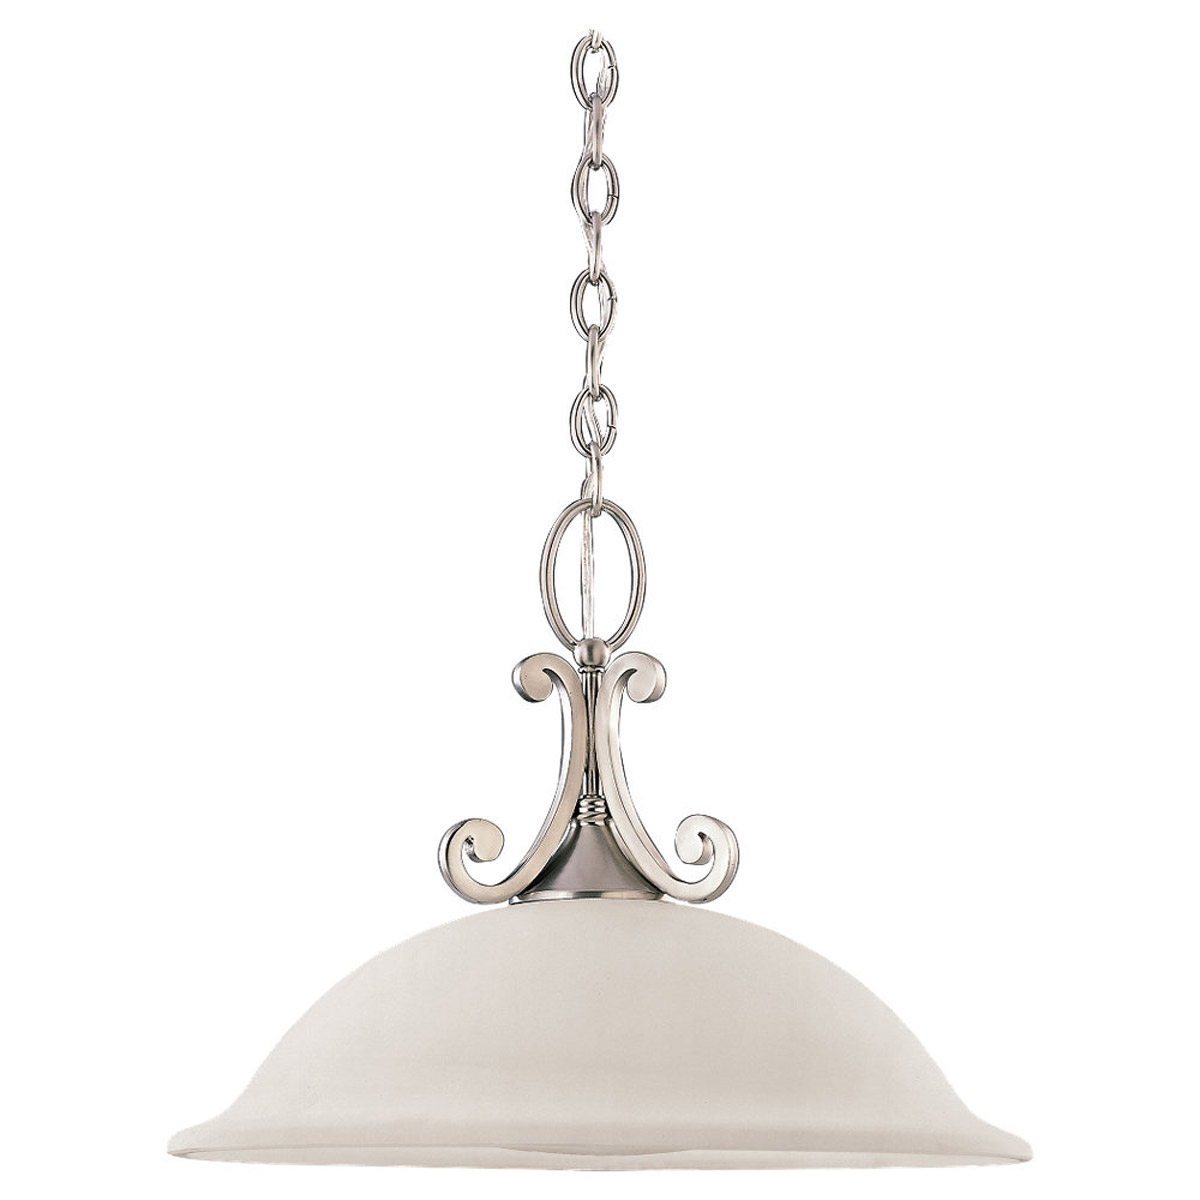 Sea Gull Lighting Serenity 1 Light Pendant in Brushed Nickel 65190-962 photo